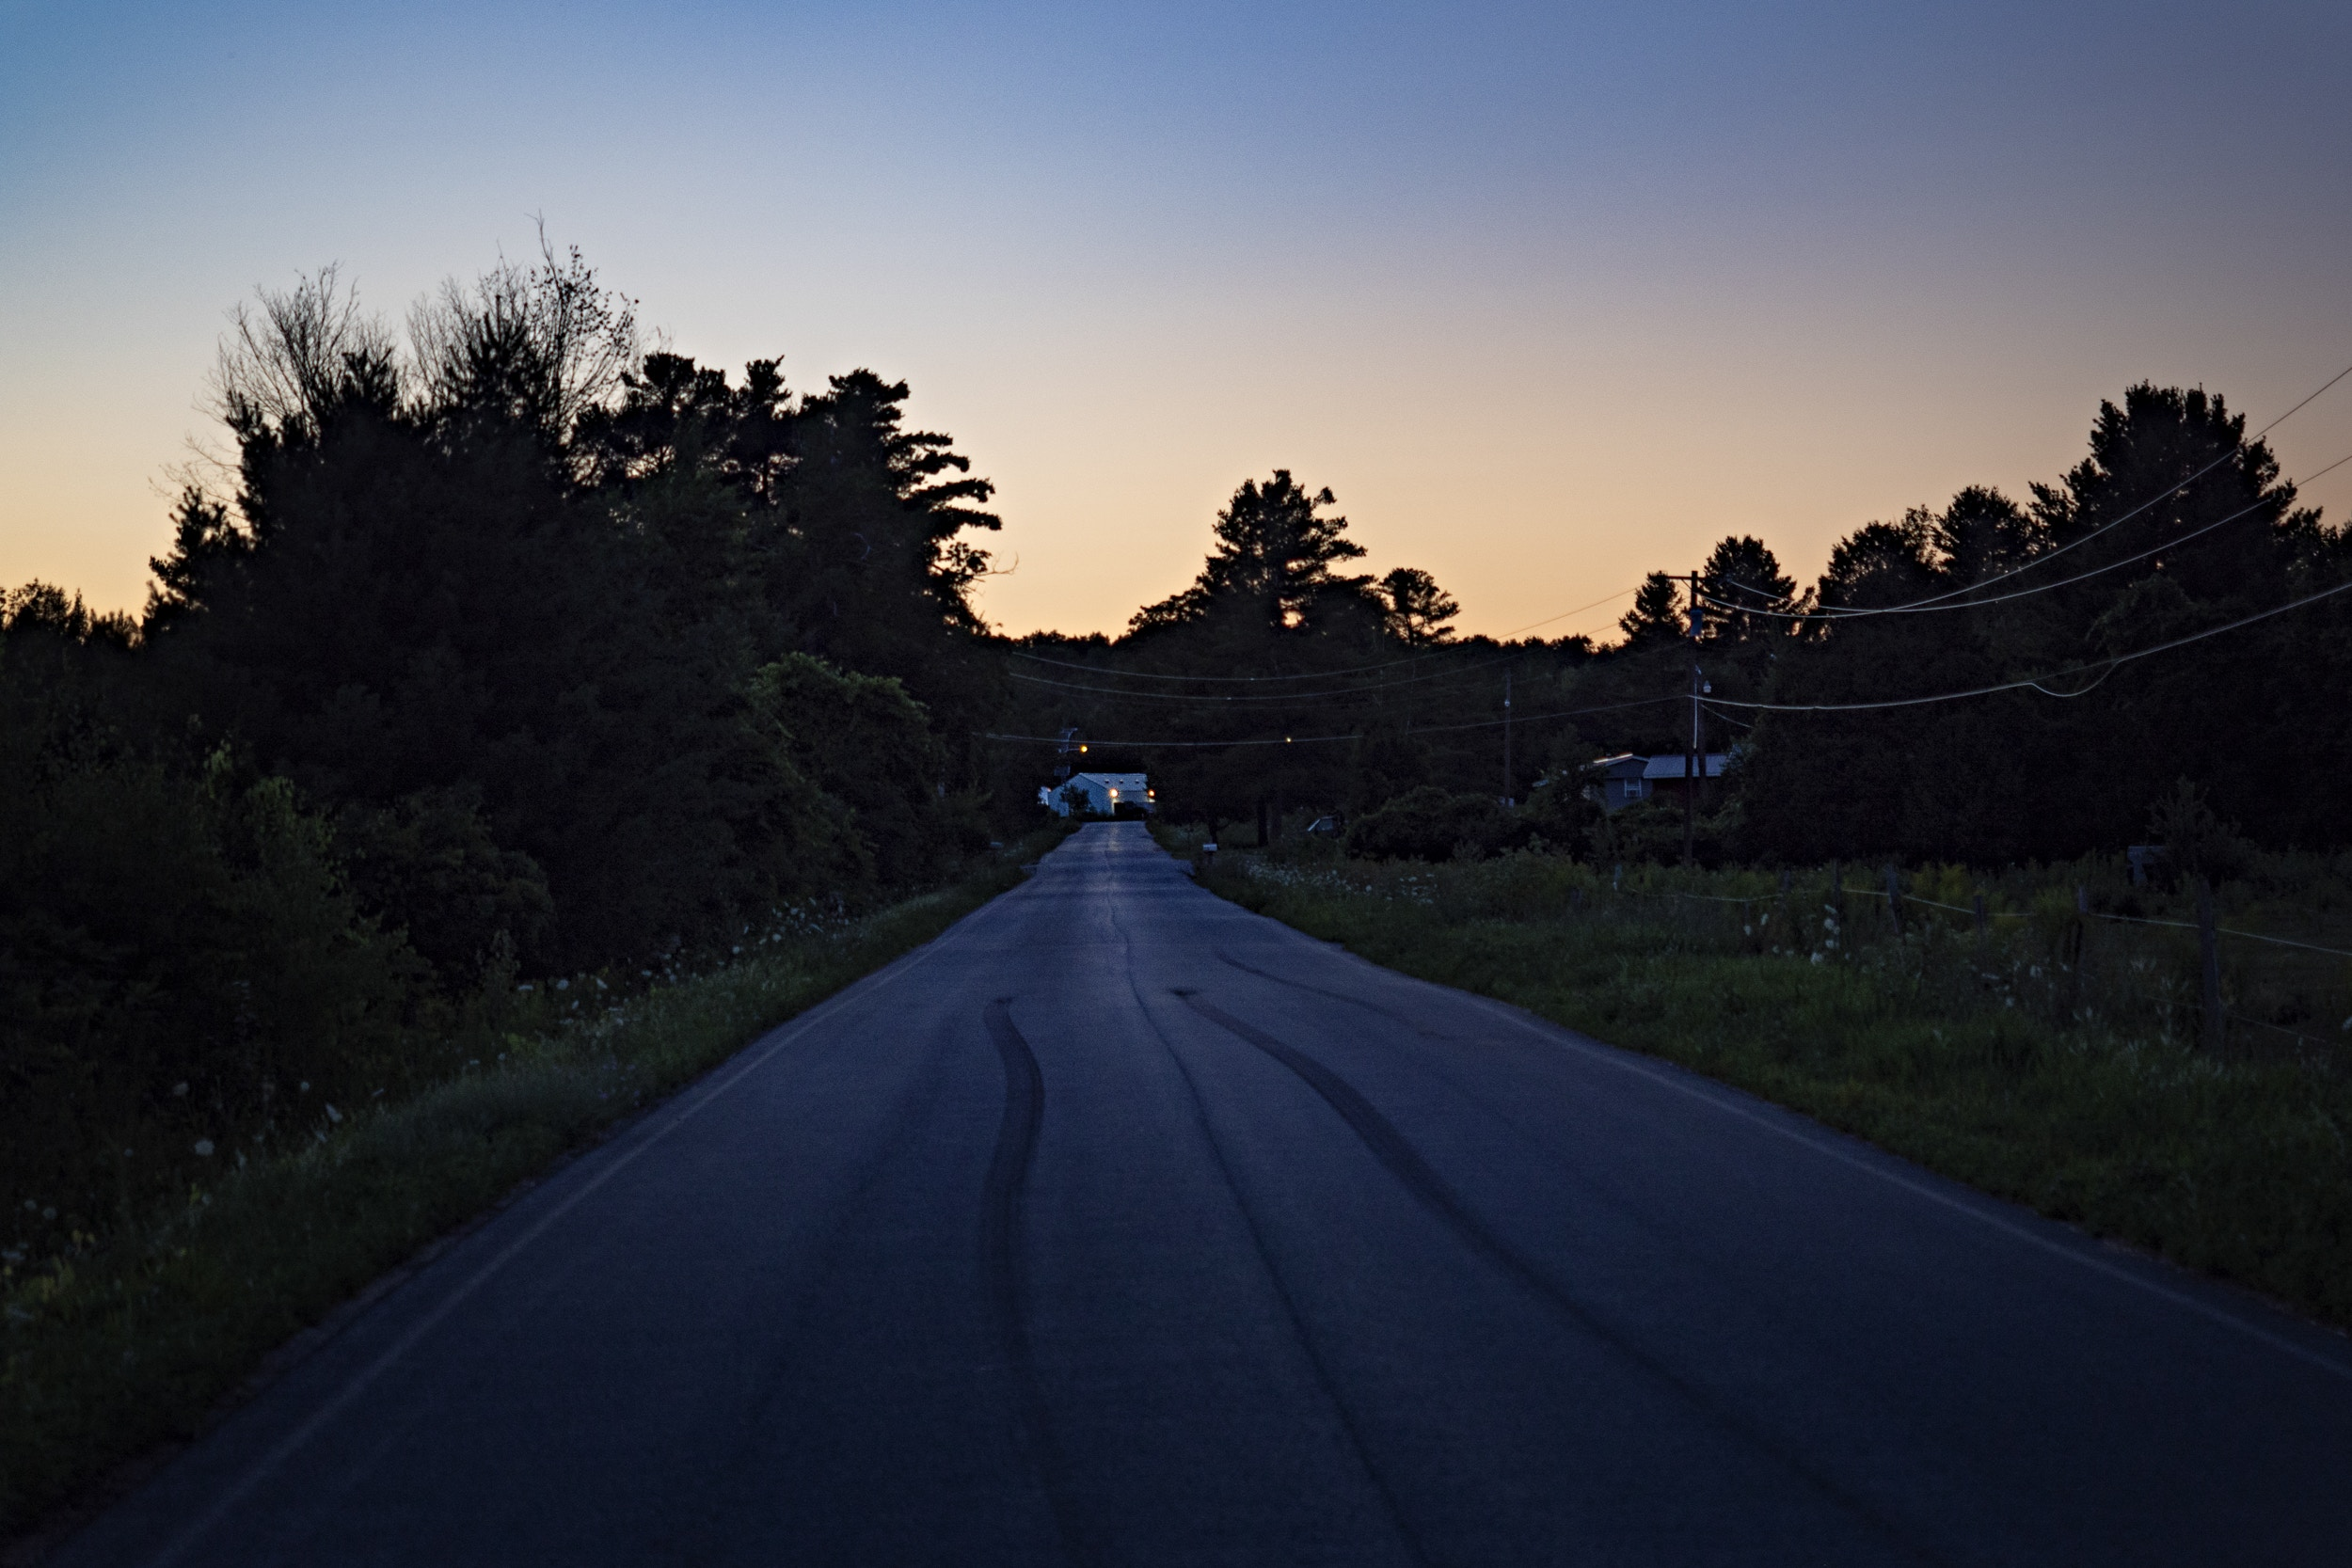 Champlain, New York - July 18, 2018. A view down Roxham Road towards the illegal border crossing into Canada in Champlain, New York, July 18, 2018. (Andre Malerba for The Washington Post via Getty Images)